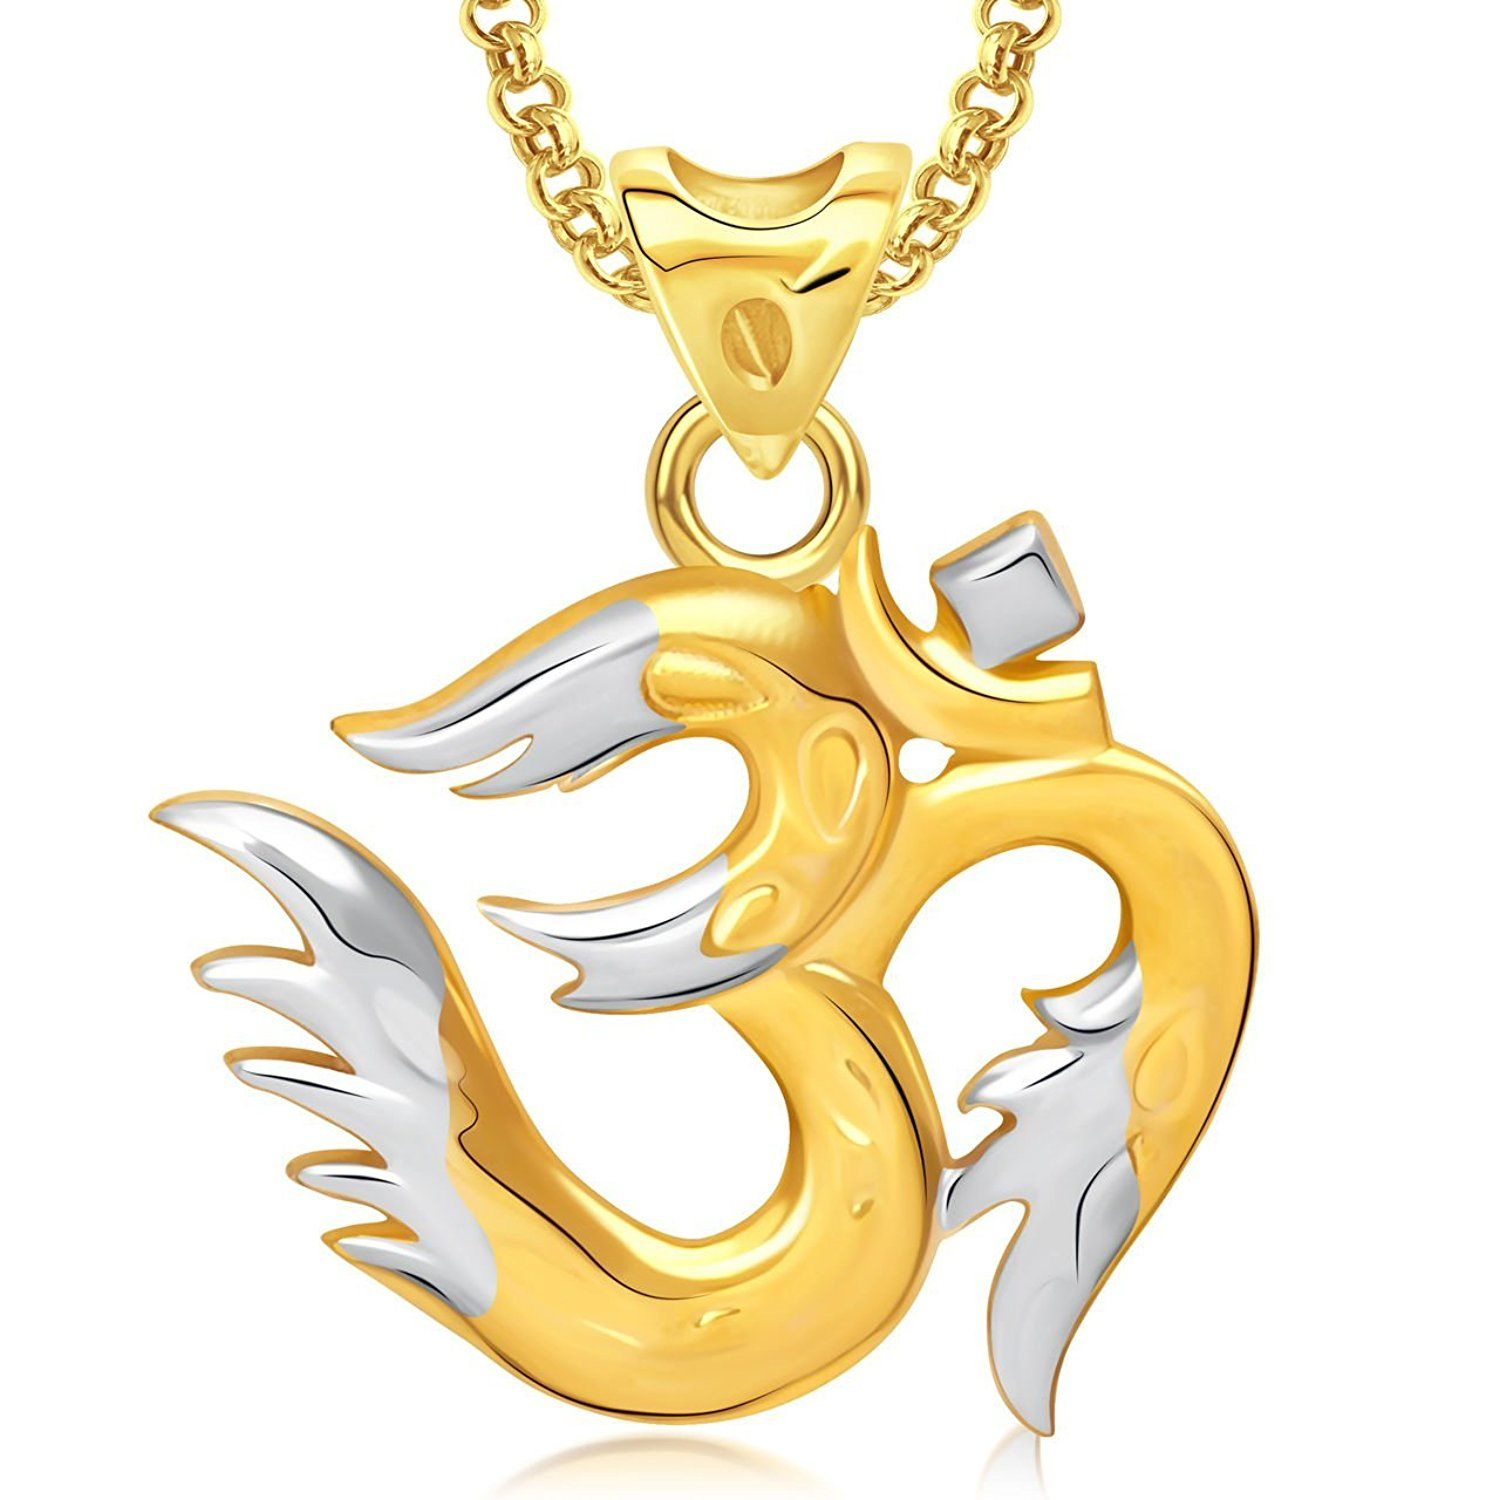 Gold pendant designs with pricebig pendant designs in goldmens gold pendant designs with pricebig pendant designs in goldmens locket online shopping mozeypictures Images